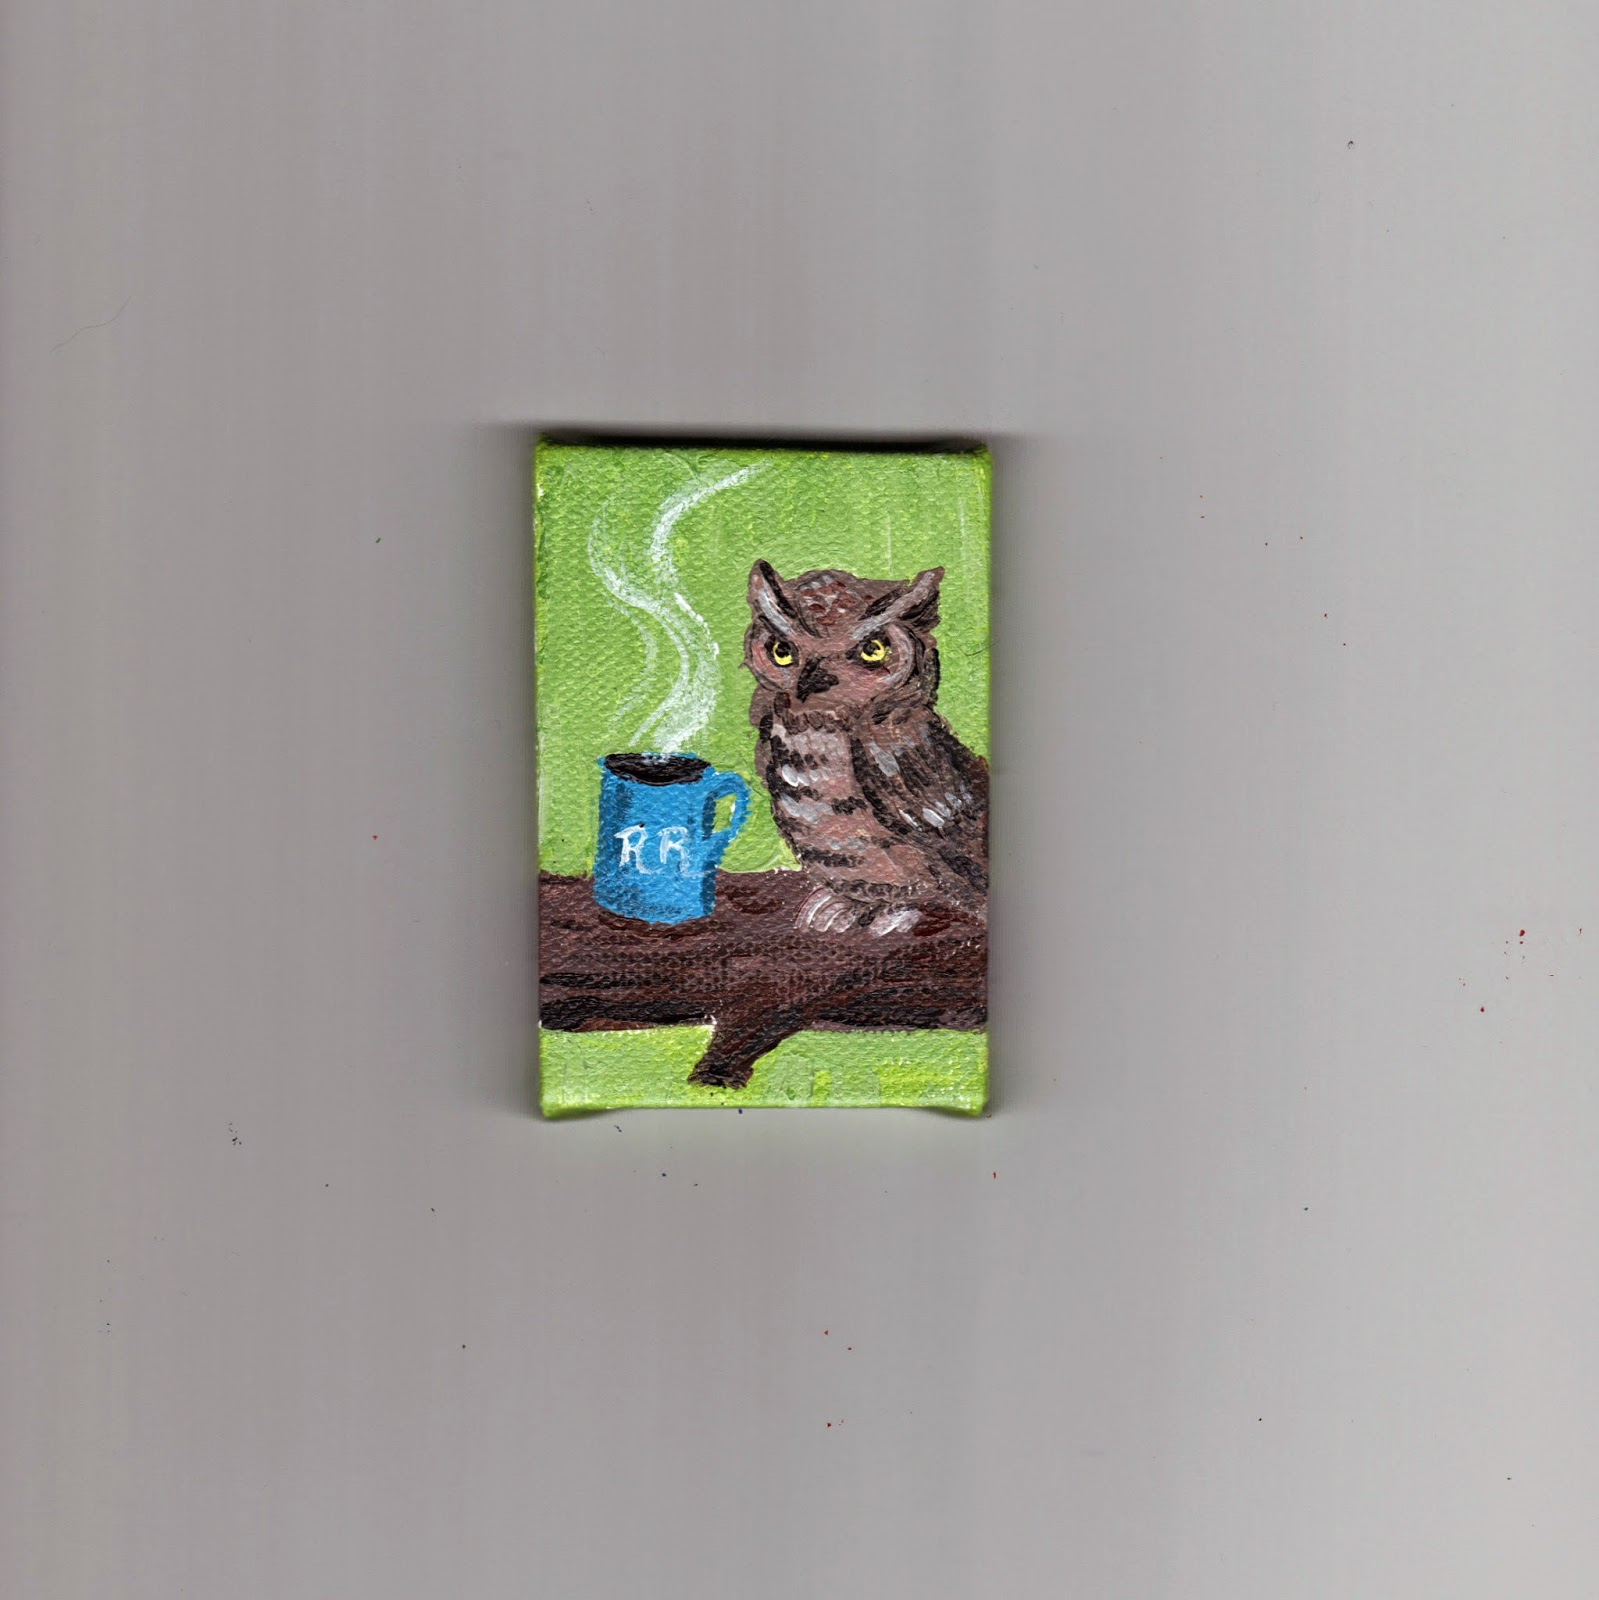 https://www.etsy.com/listing/186364078/miniature-art-twin-peaks-owl-coffee-rr?ref=listing-shop-header-1